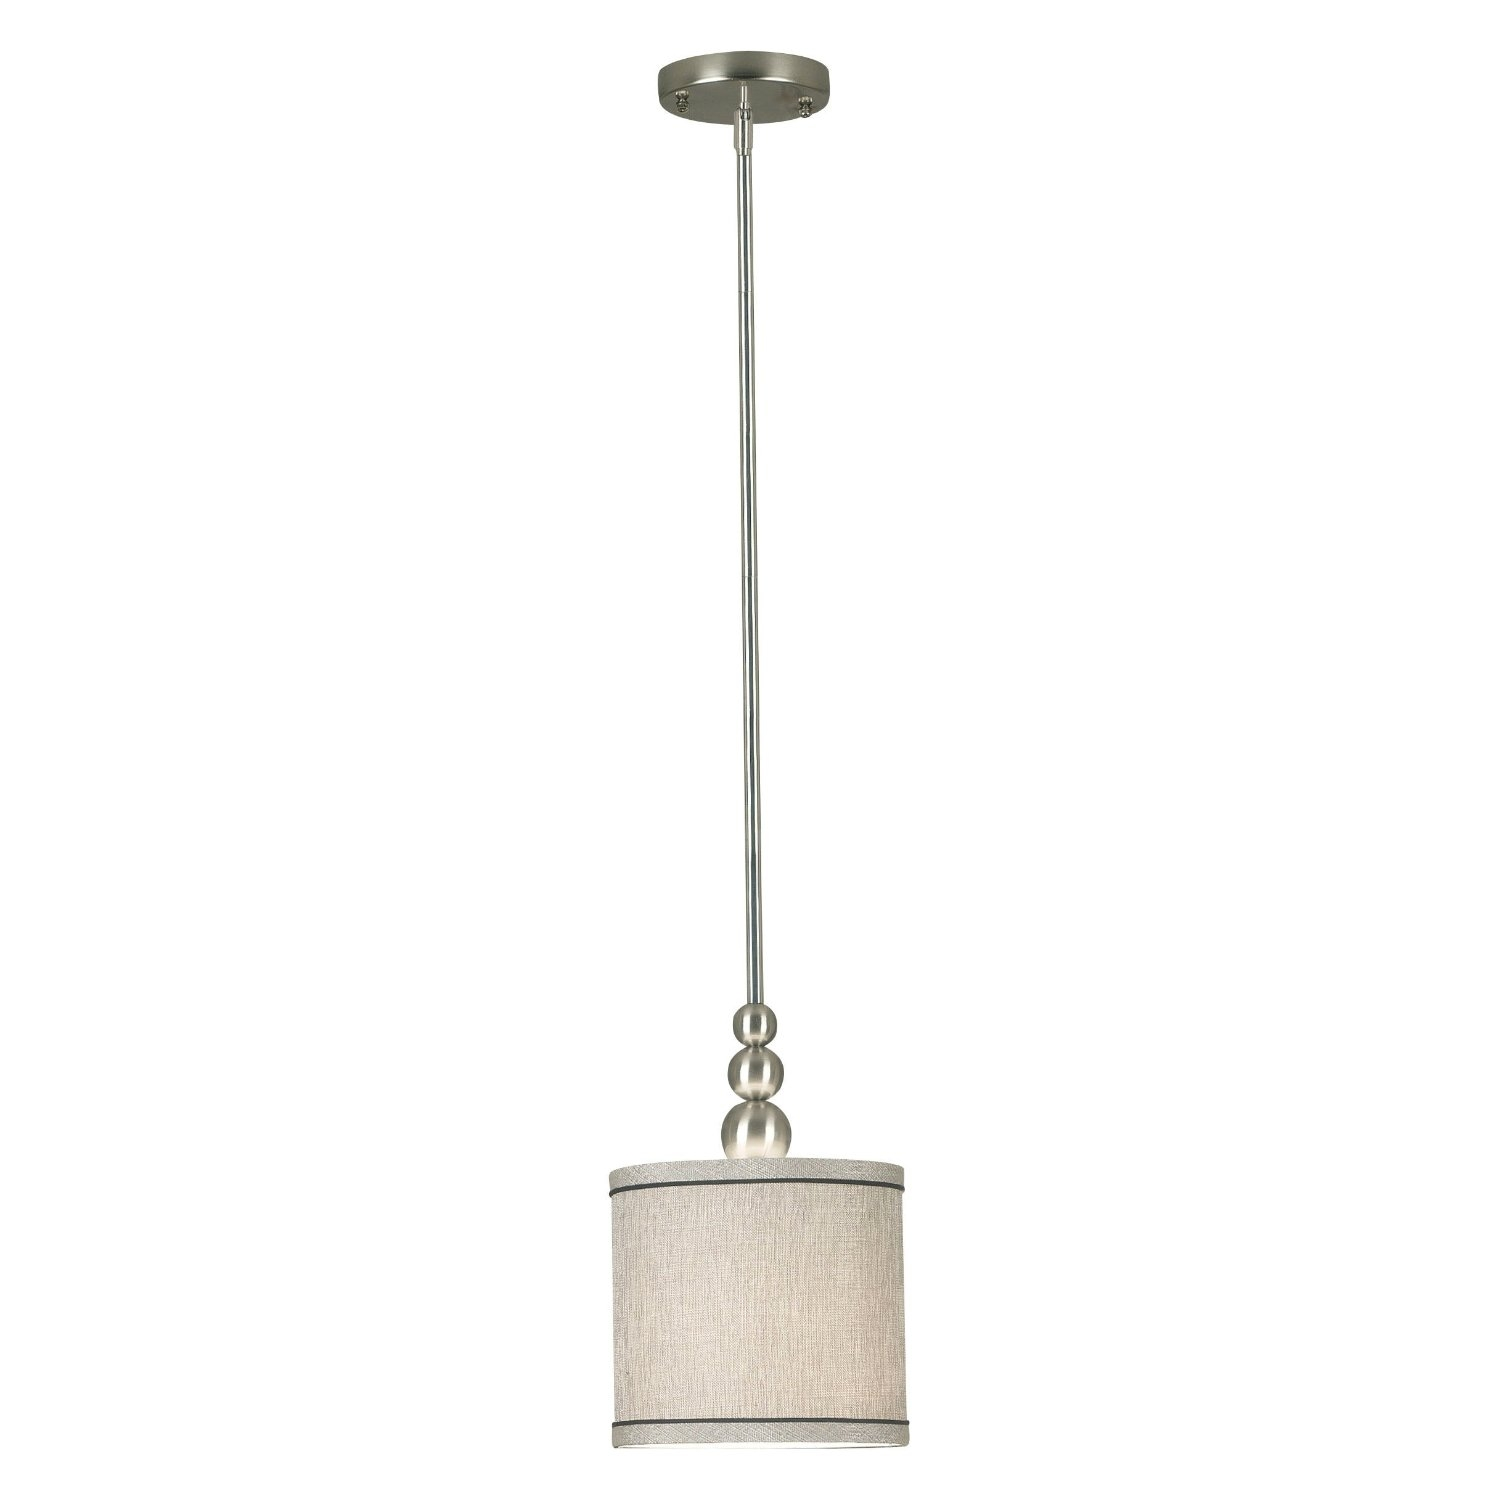 This 1-Light Mini Pendant in Brushed Steel with Fabric Drum Shade comes with an 8-Inch width silver metallic fabric shade. The crisp, clean design of Margot is elegant no matter what the color: brushed steel or oil rubbed bronze makes for a gorgeous modern neutral. Either way, a simple drum shade keeps things streamlined.